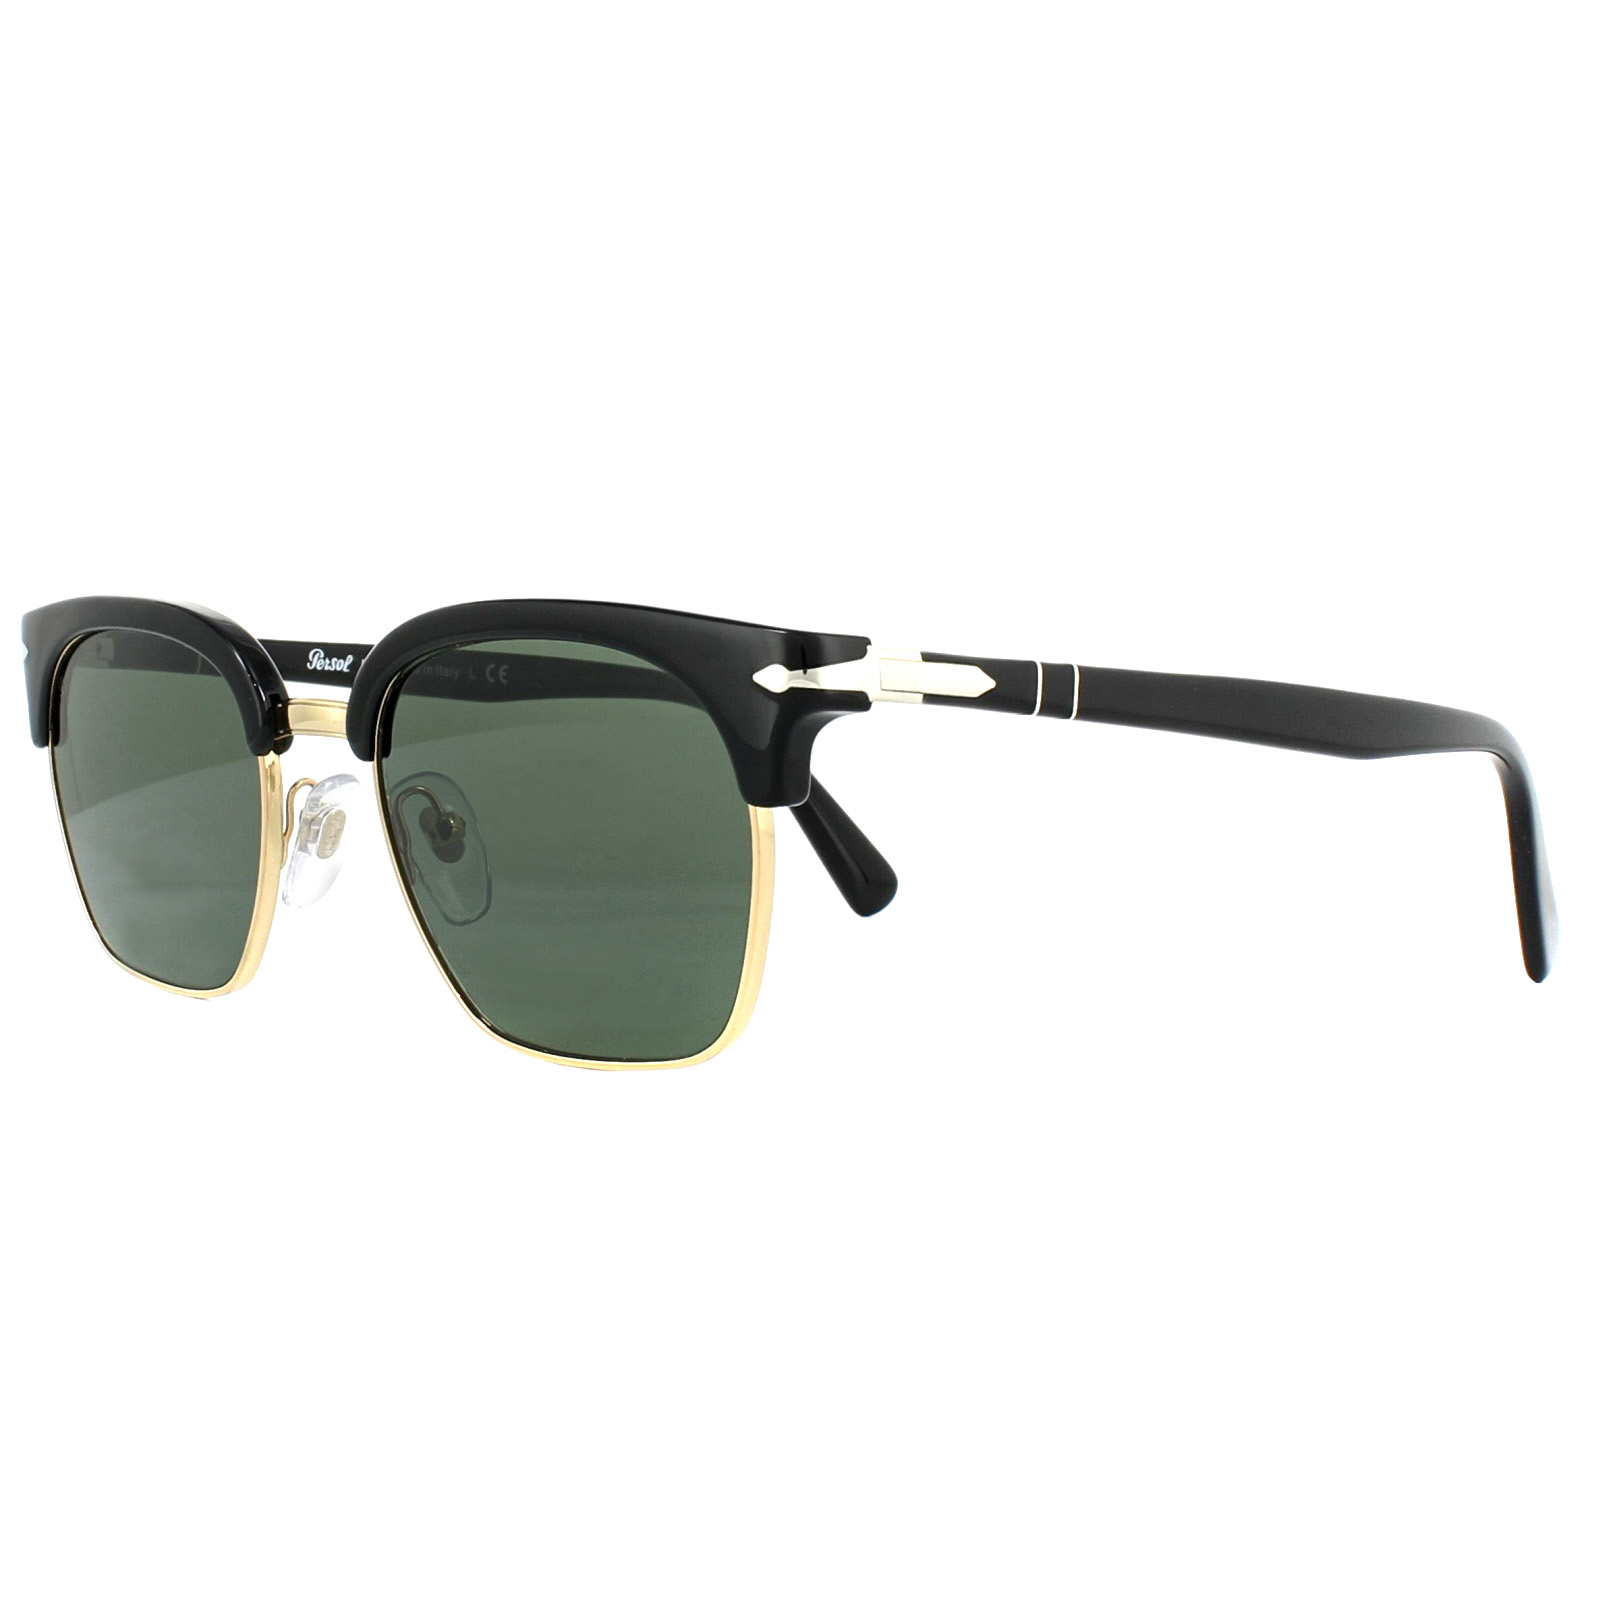 7faa599871c5 Cheap Persol PO3199S Sunglasses - Discounted Sunglasses